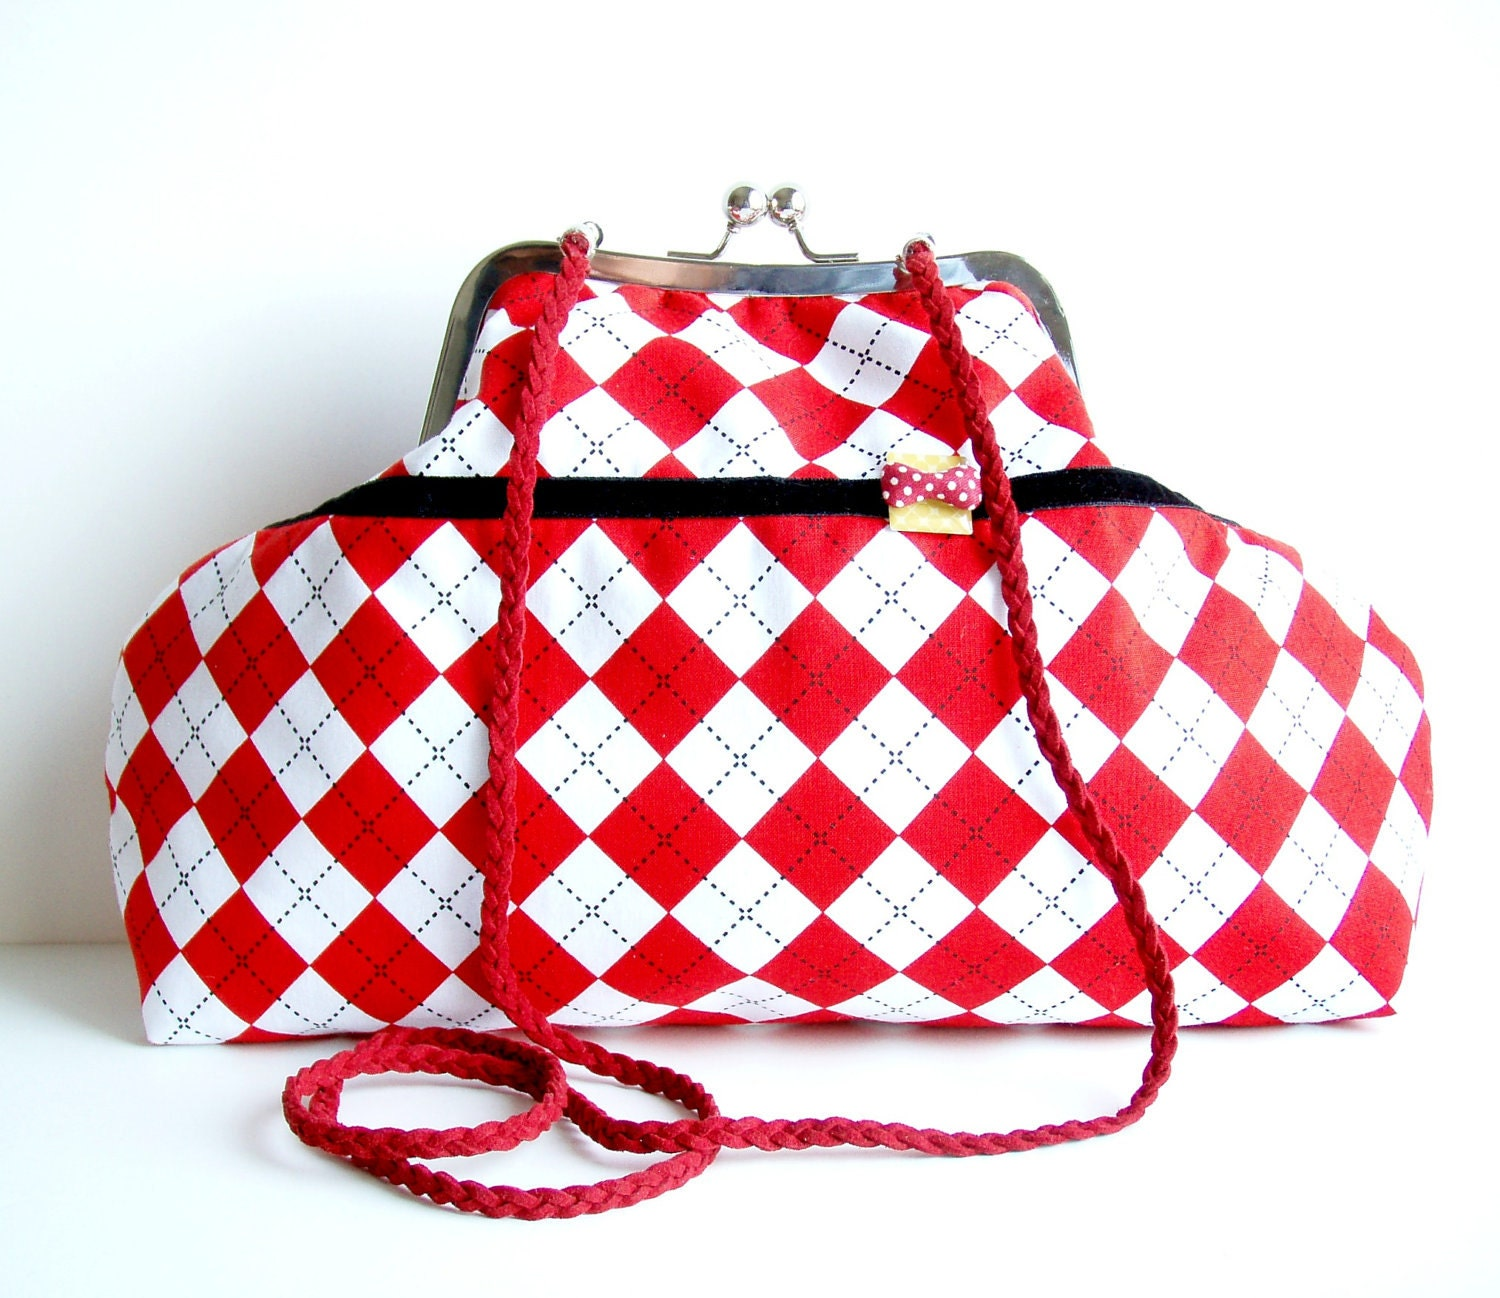 Shoulder Purse Red White Diamonds Printed Fabric Charming Bow - microbio